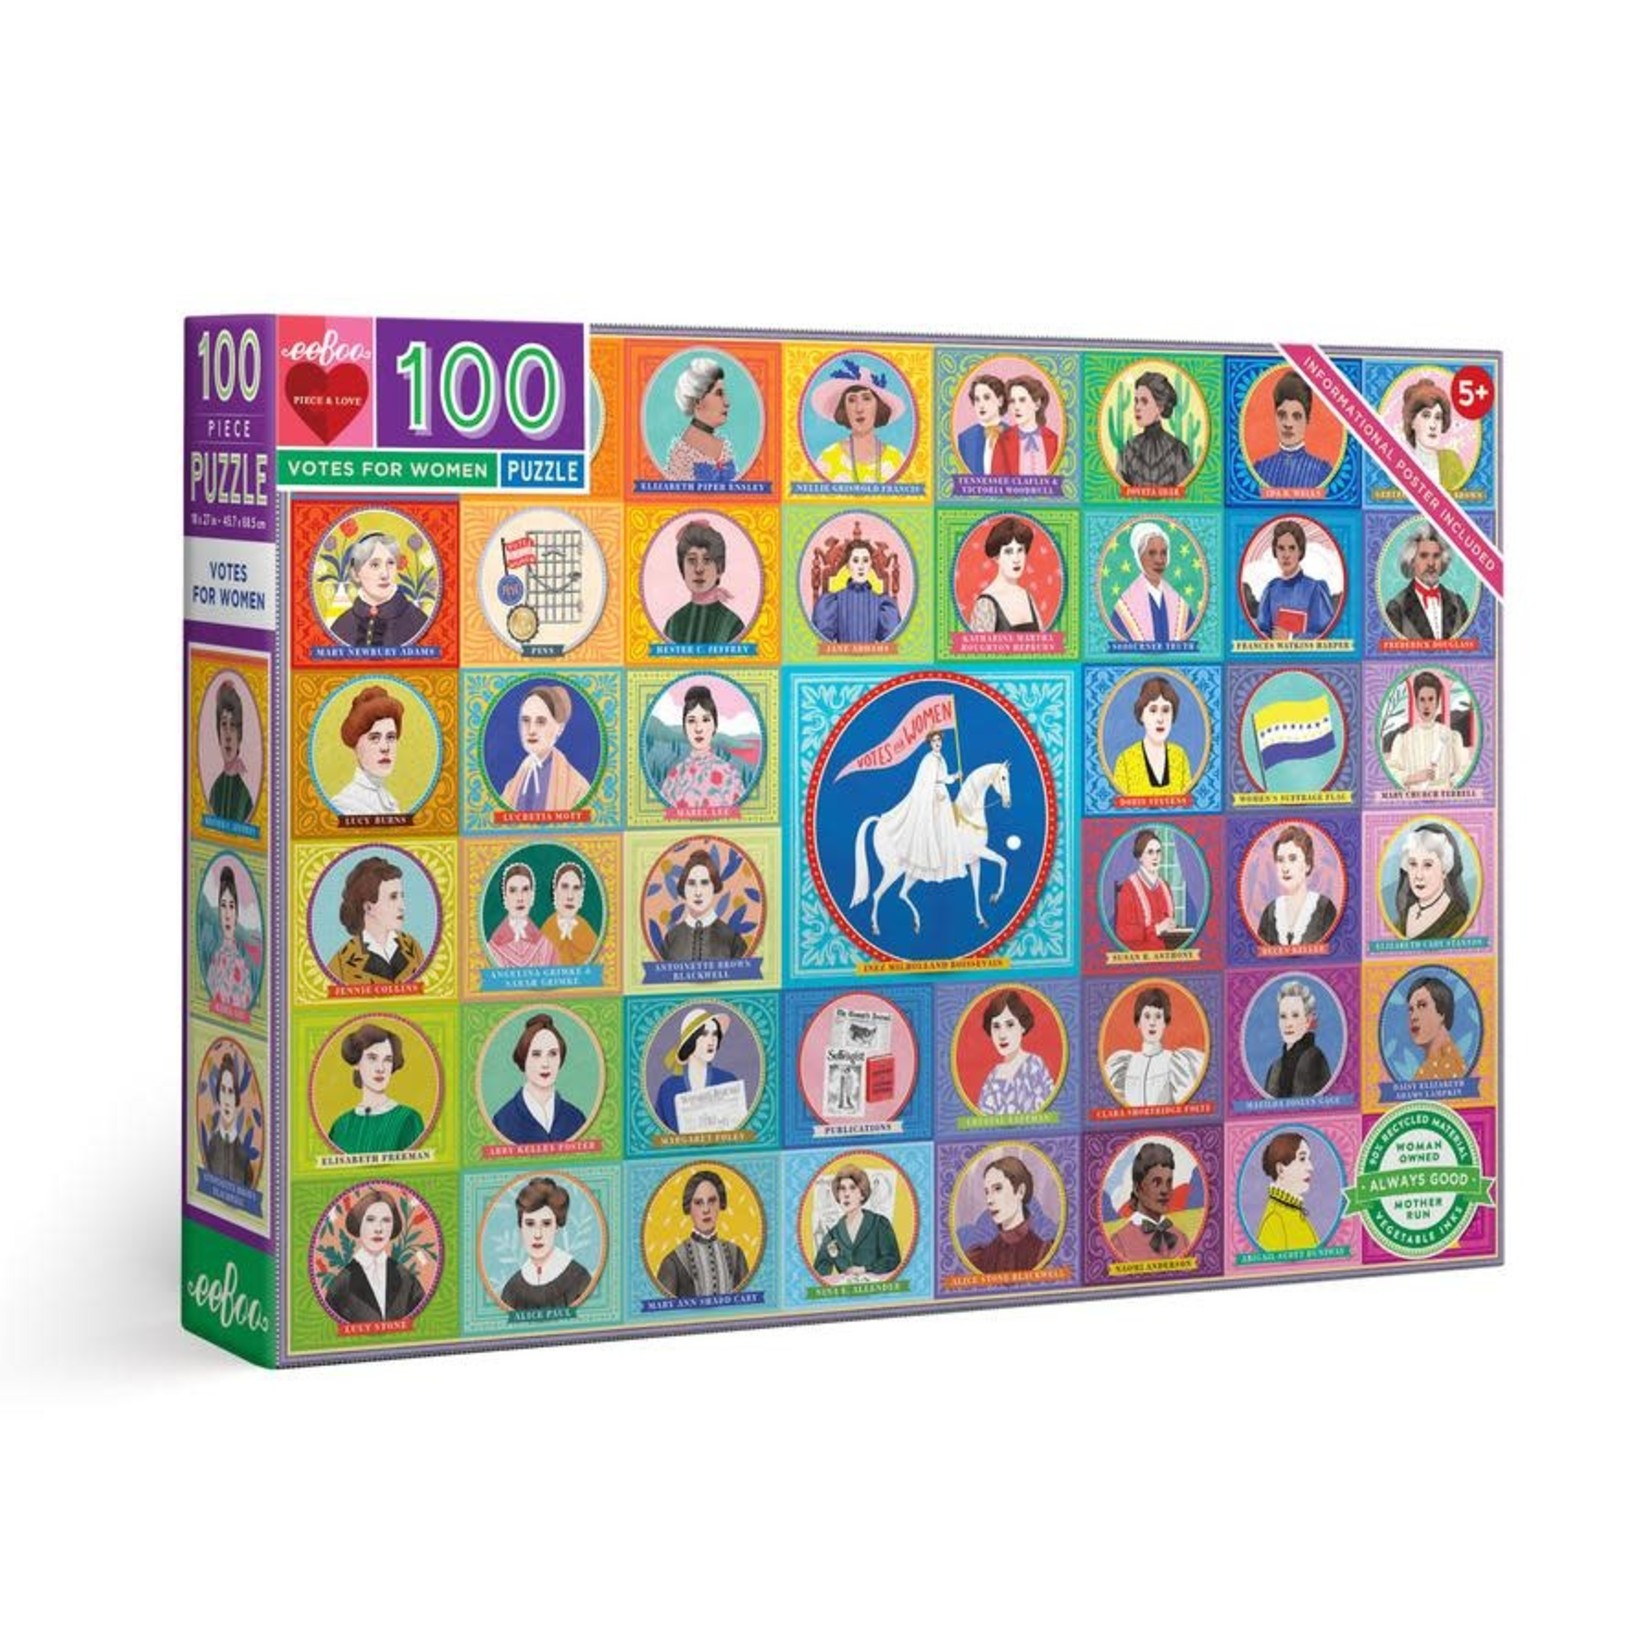 eeBoo eeBoo Puzzle: Votes for Women 100 pc